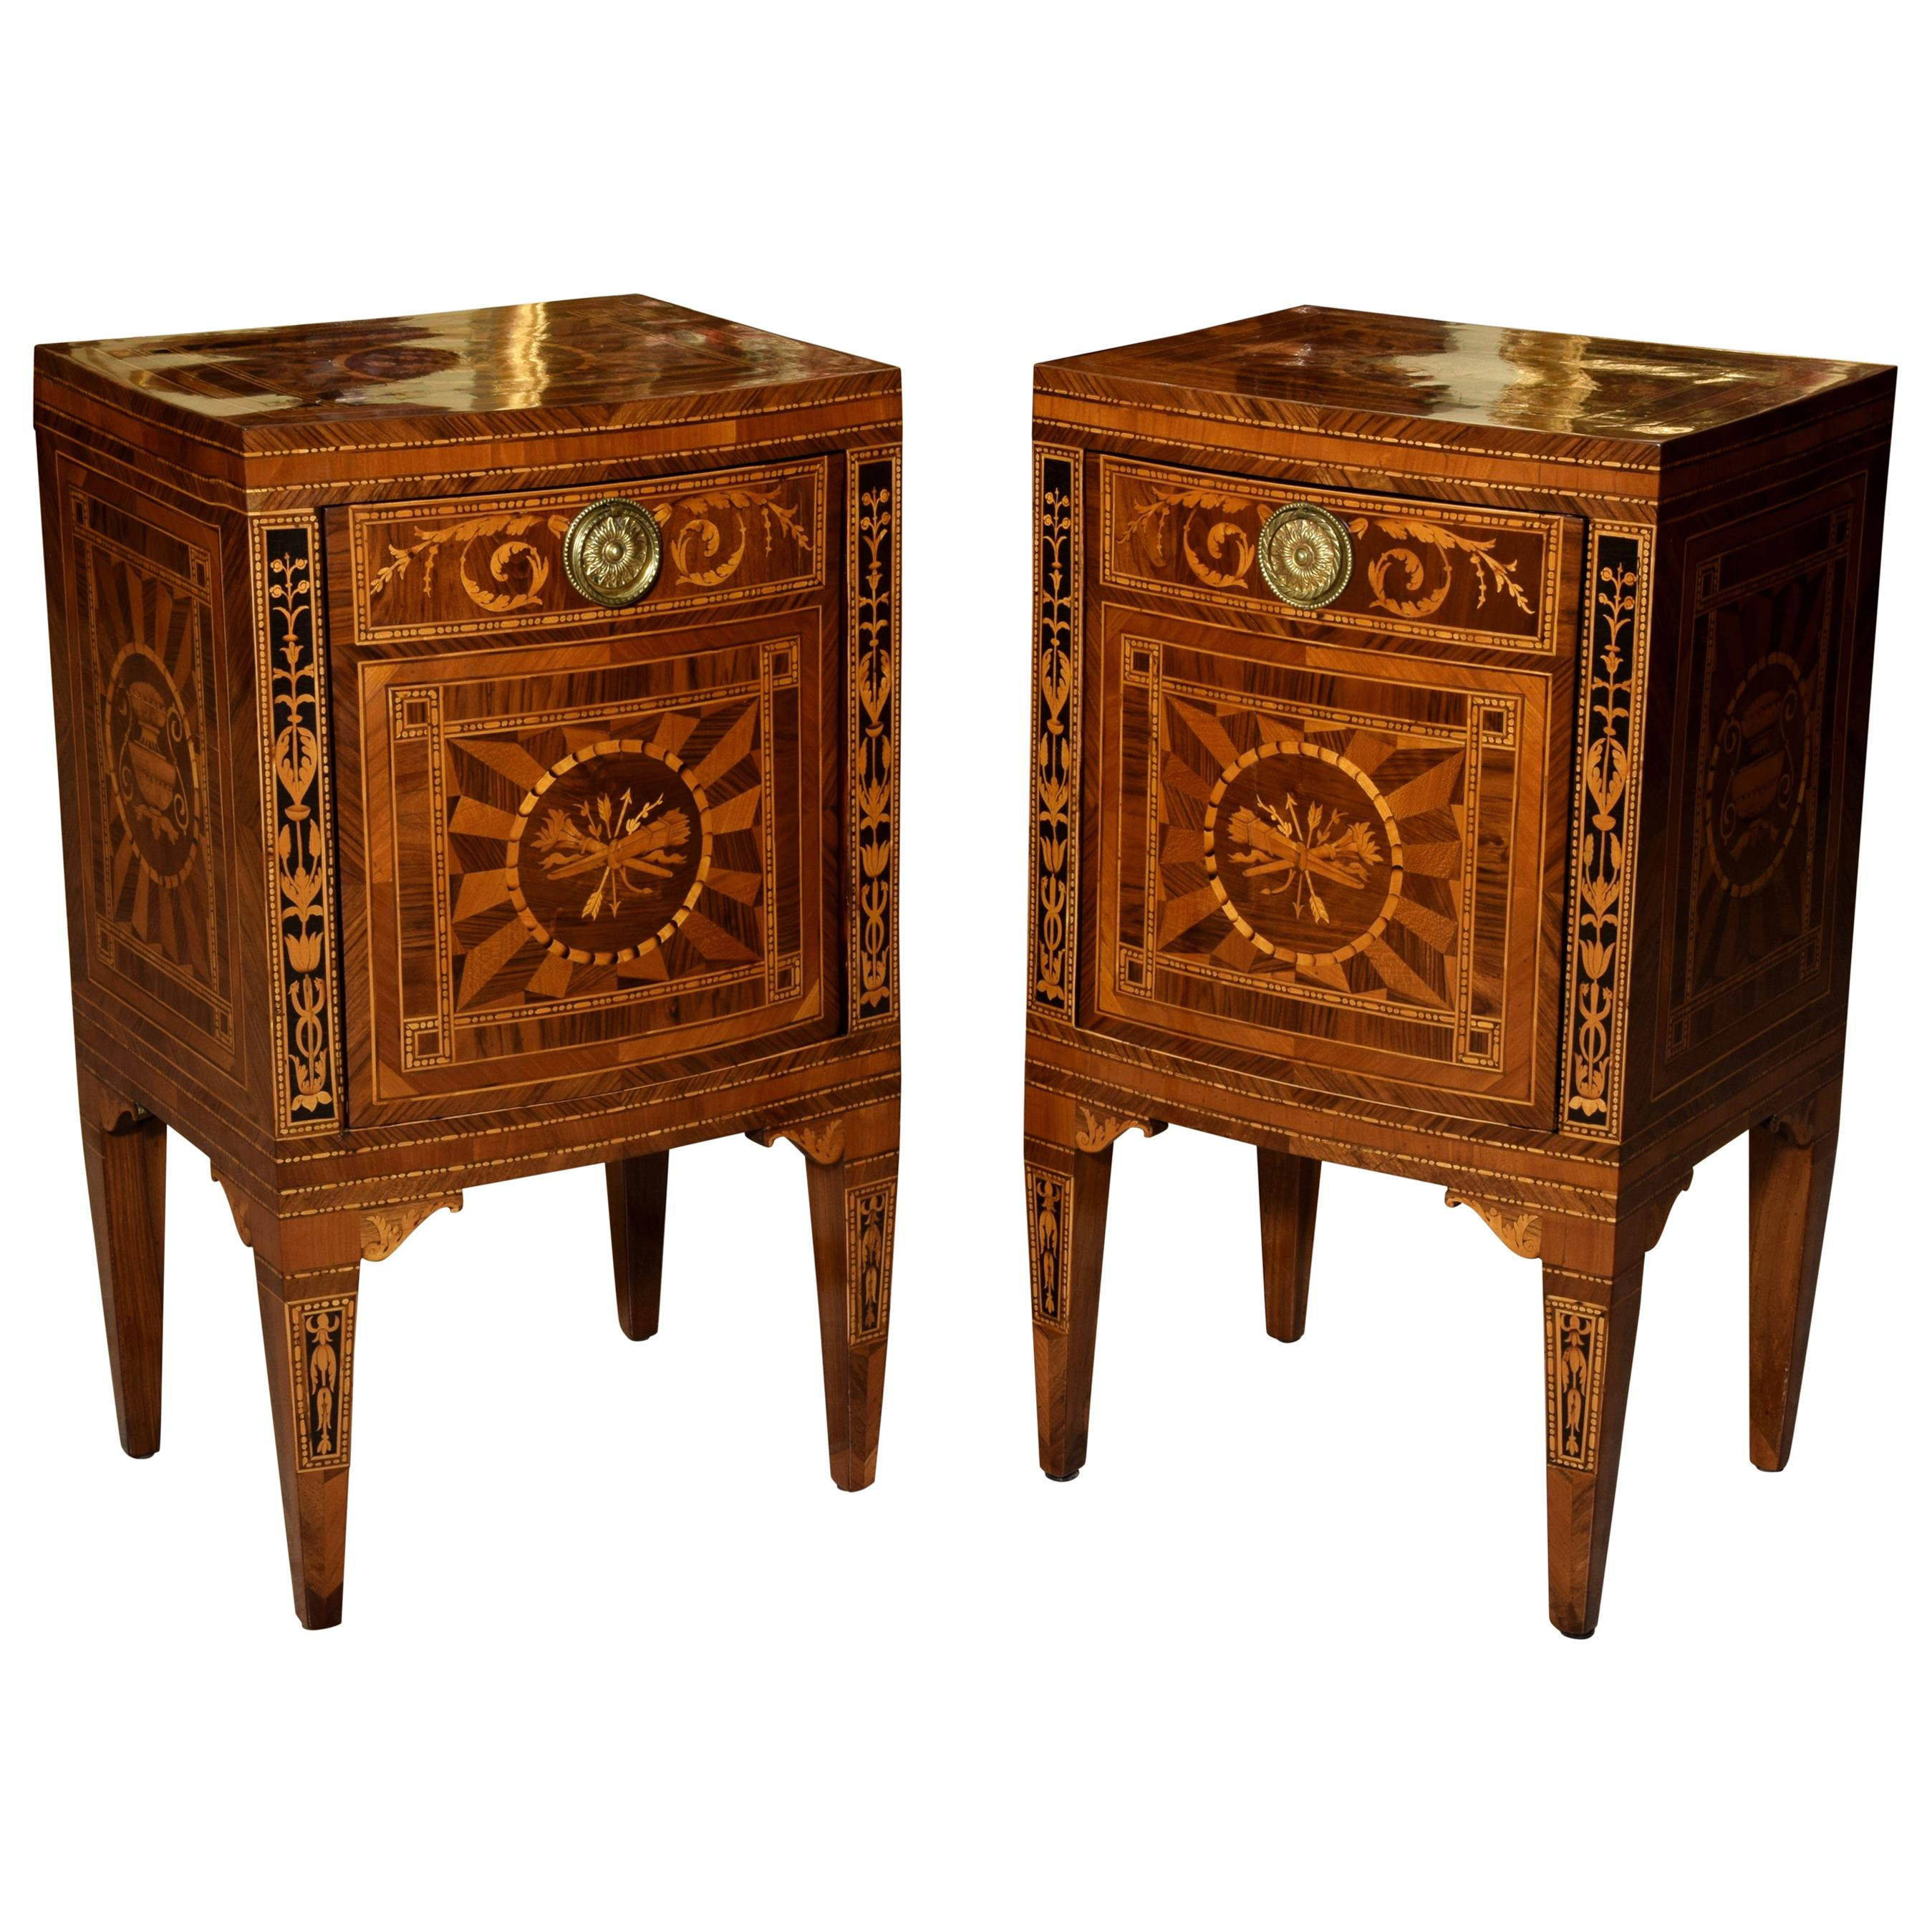 18th Century, Pair of Neoclassical Italian Inlaid Wood Bedside Tables